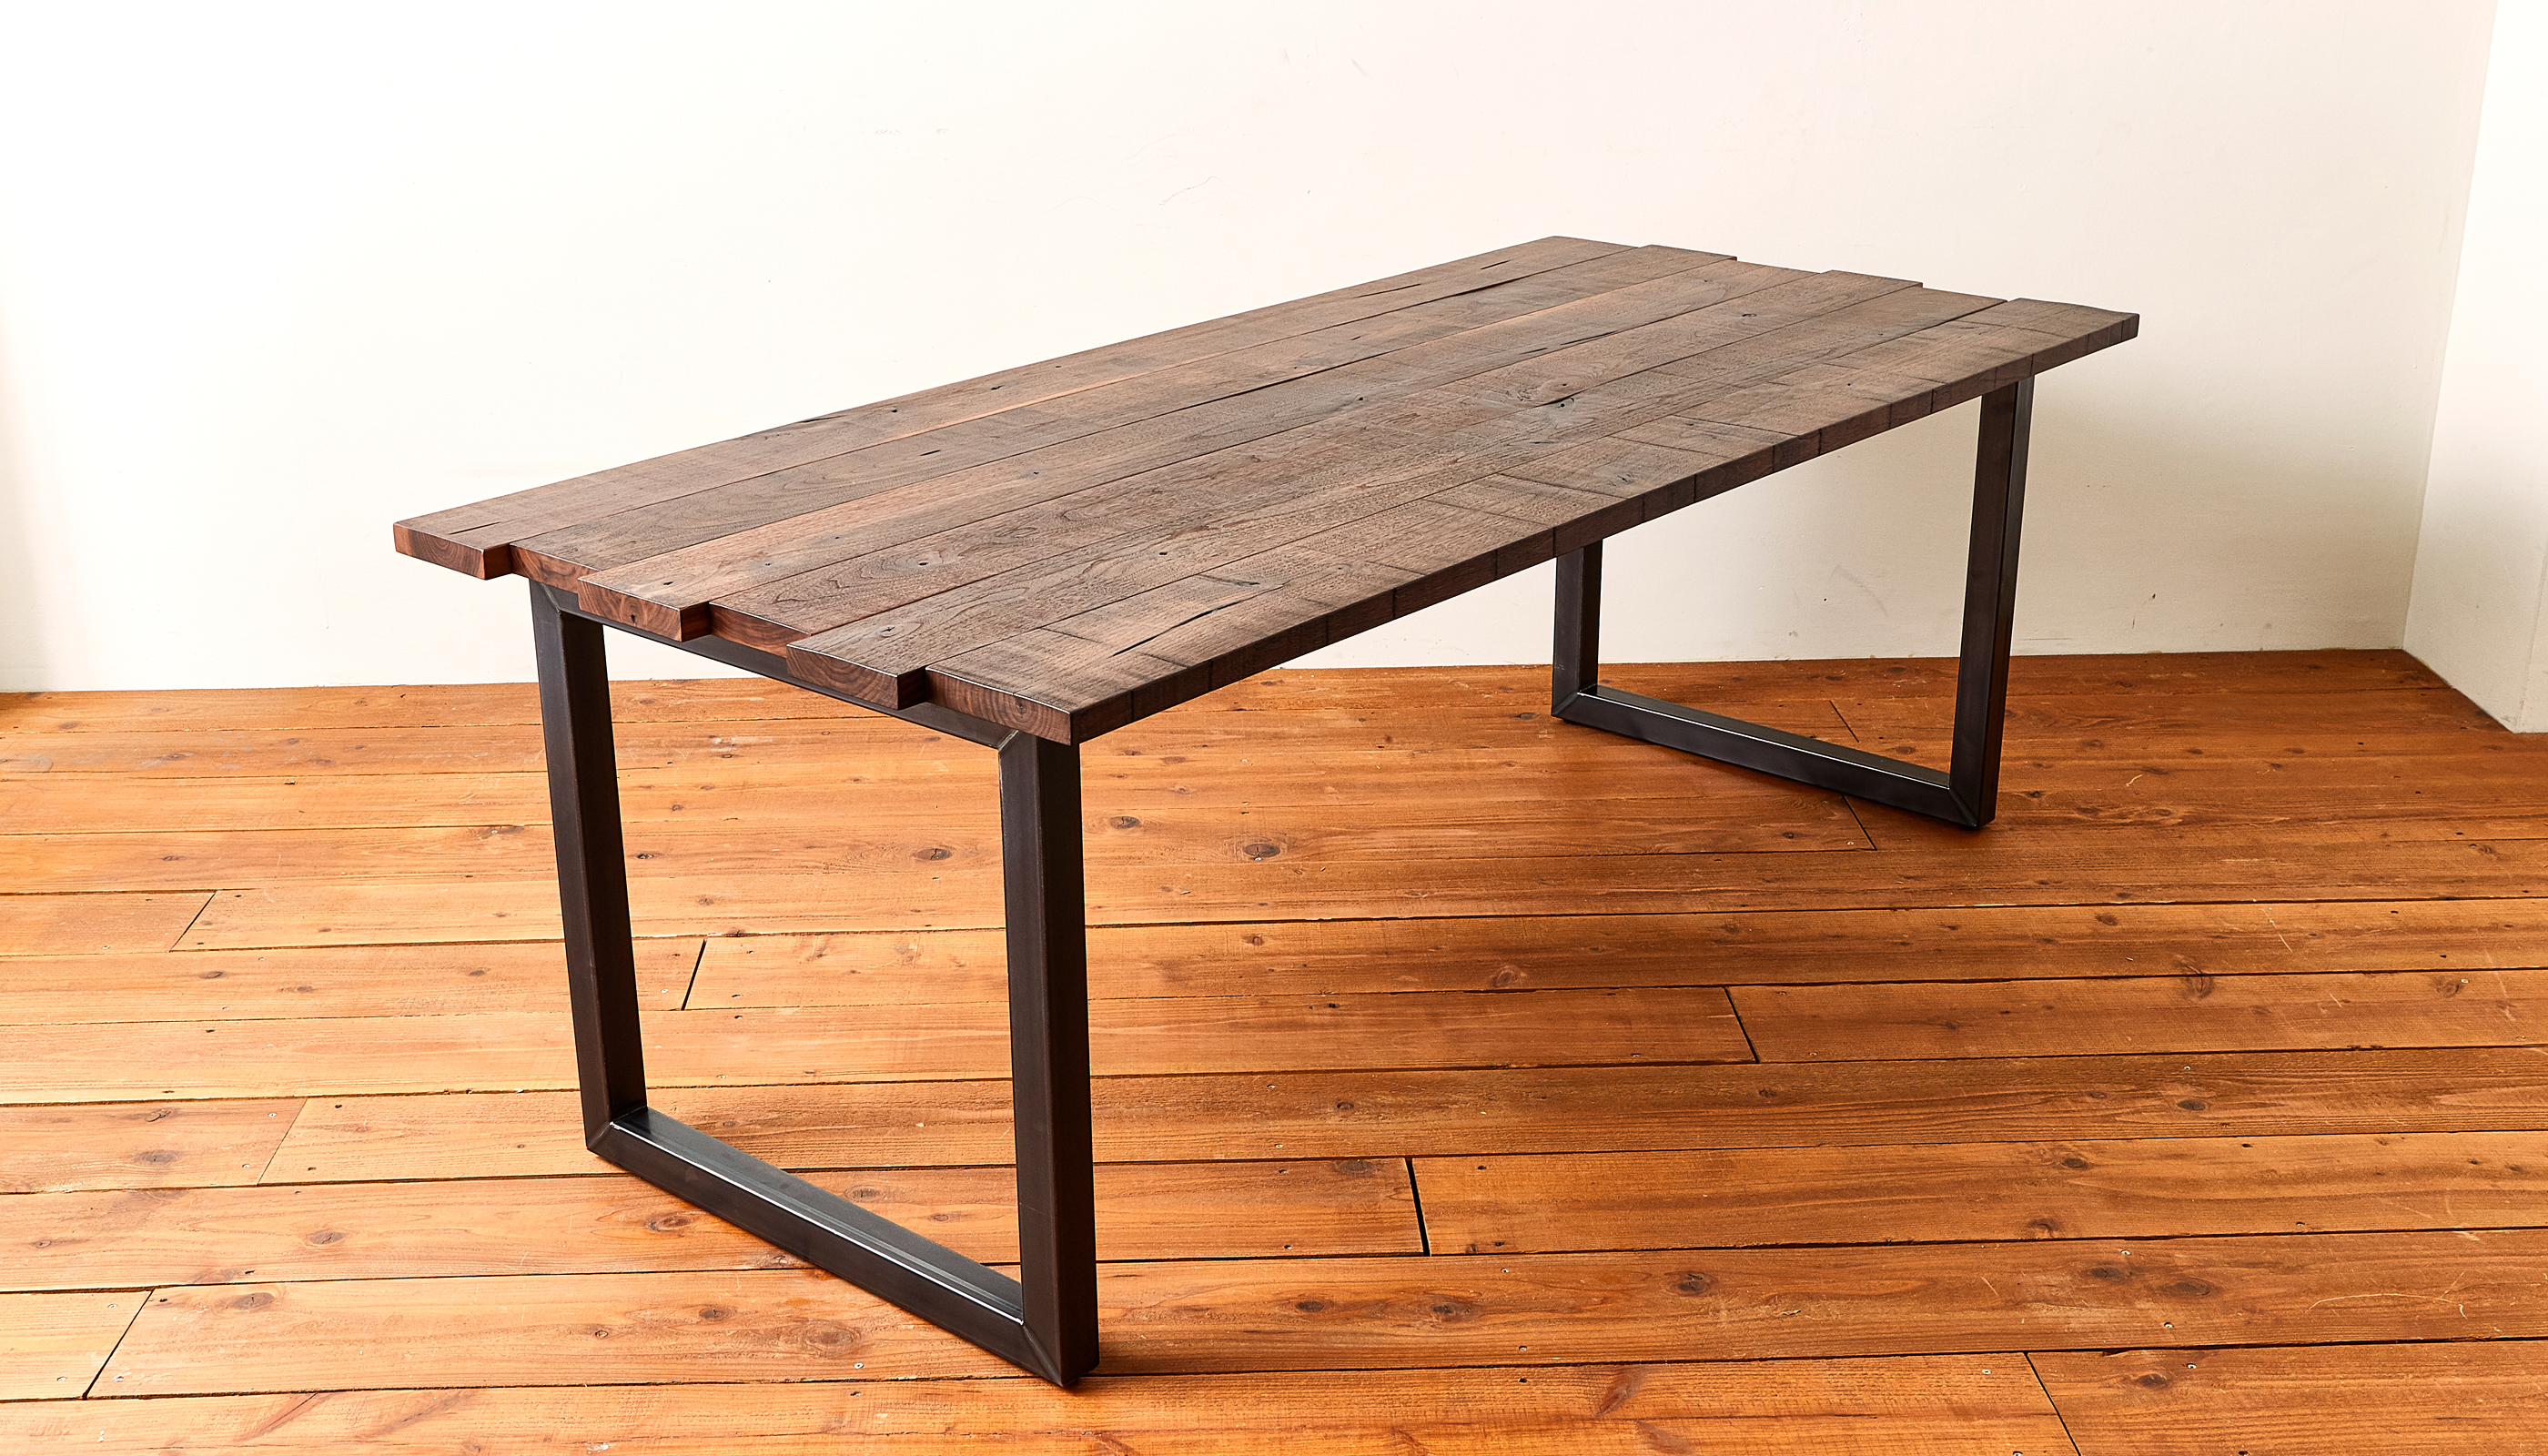 CRAFT<span>DINING TABLE</span>